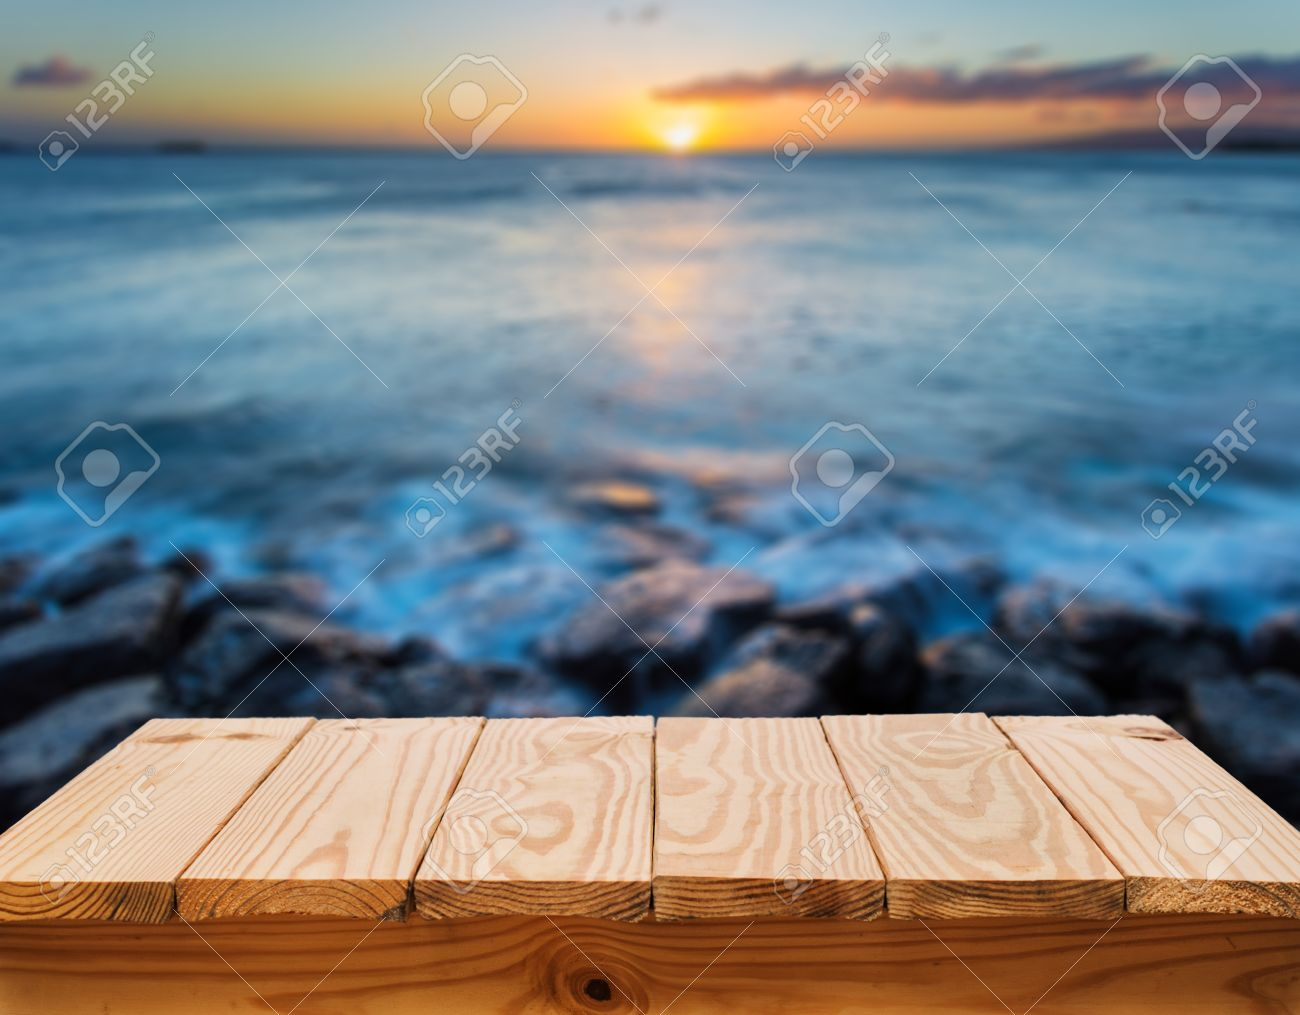 Wood table and sunset beach background